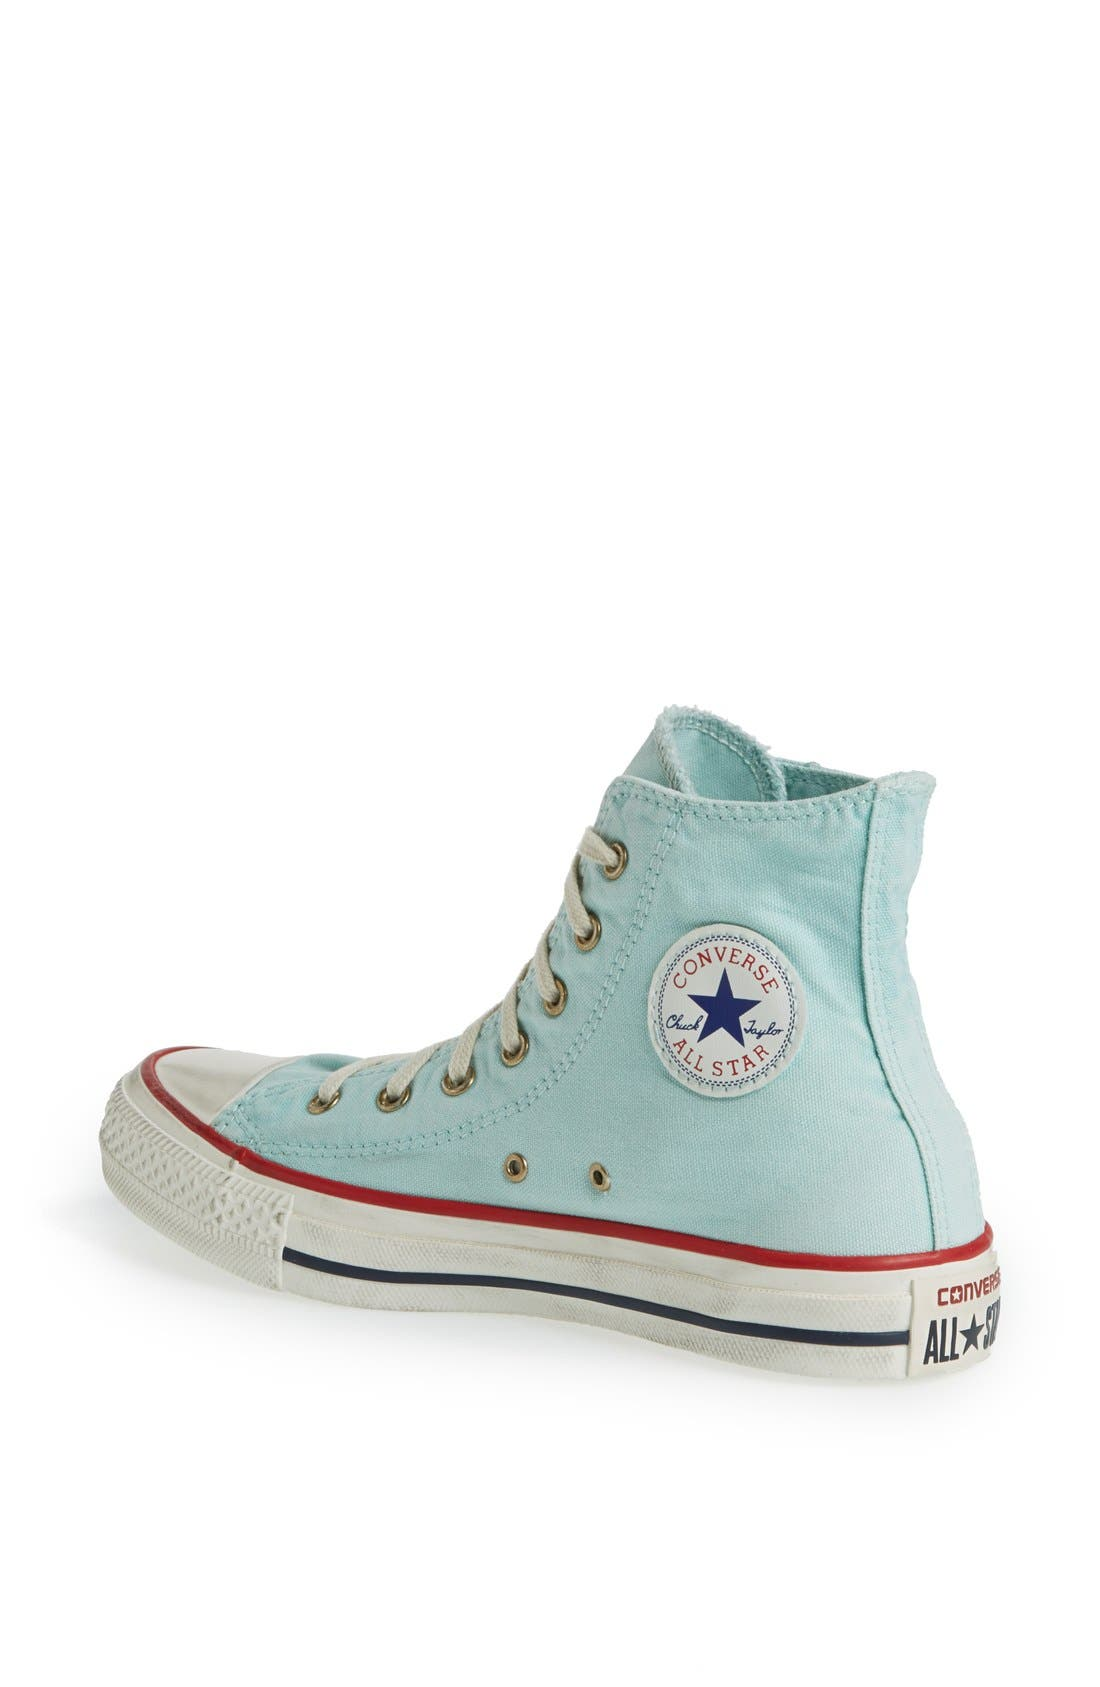 Alternate Image 2  - Converse Chuck Taylor® All Star® Washed Canvas High Top Sneaker (Women)